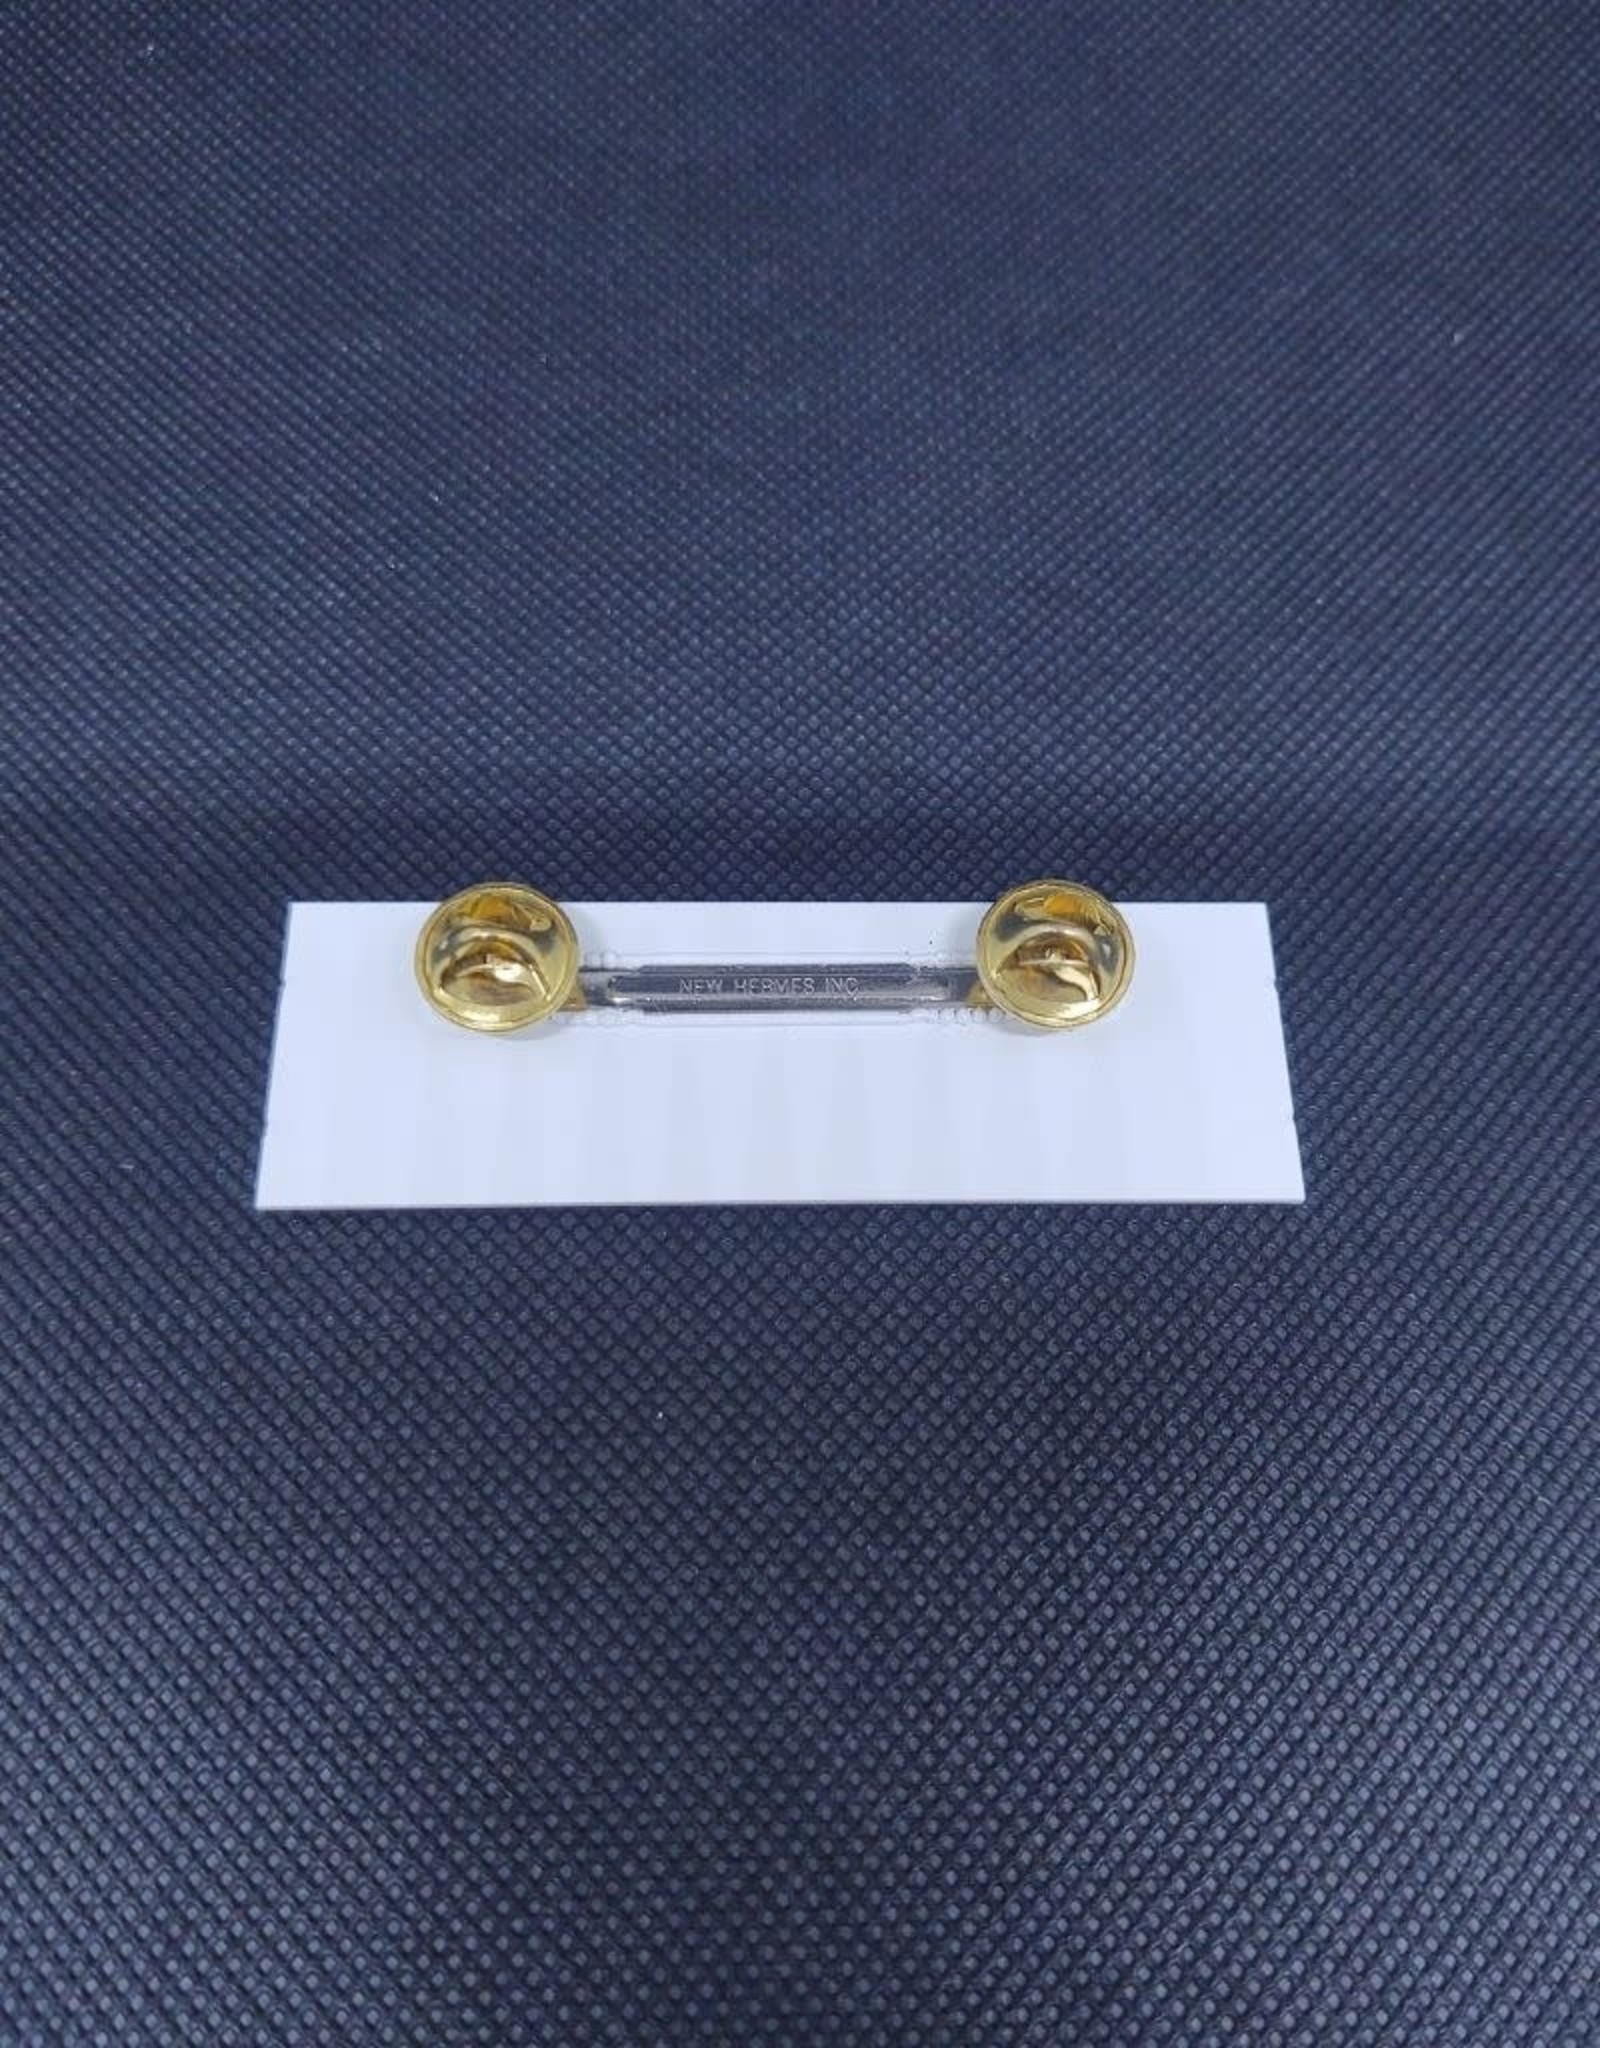 Class A Name Tag Rough Pin-on